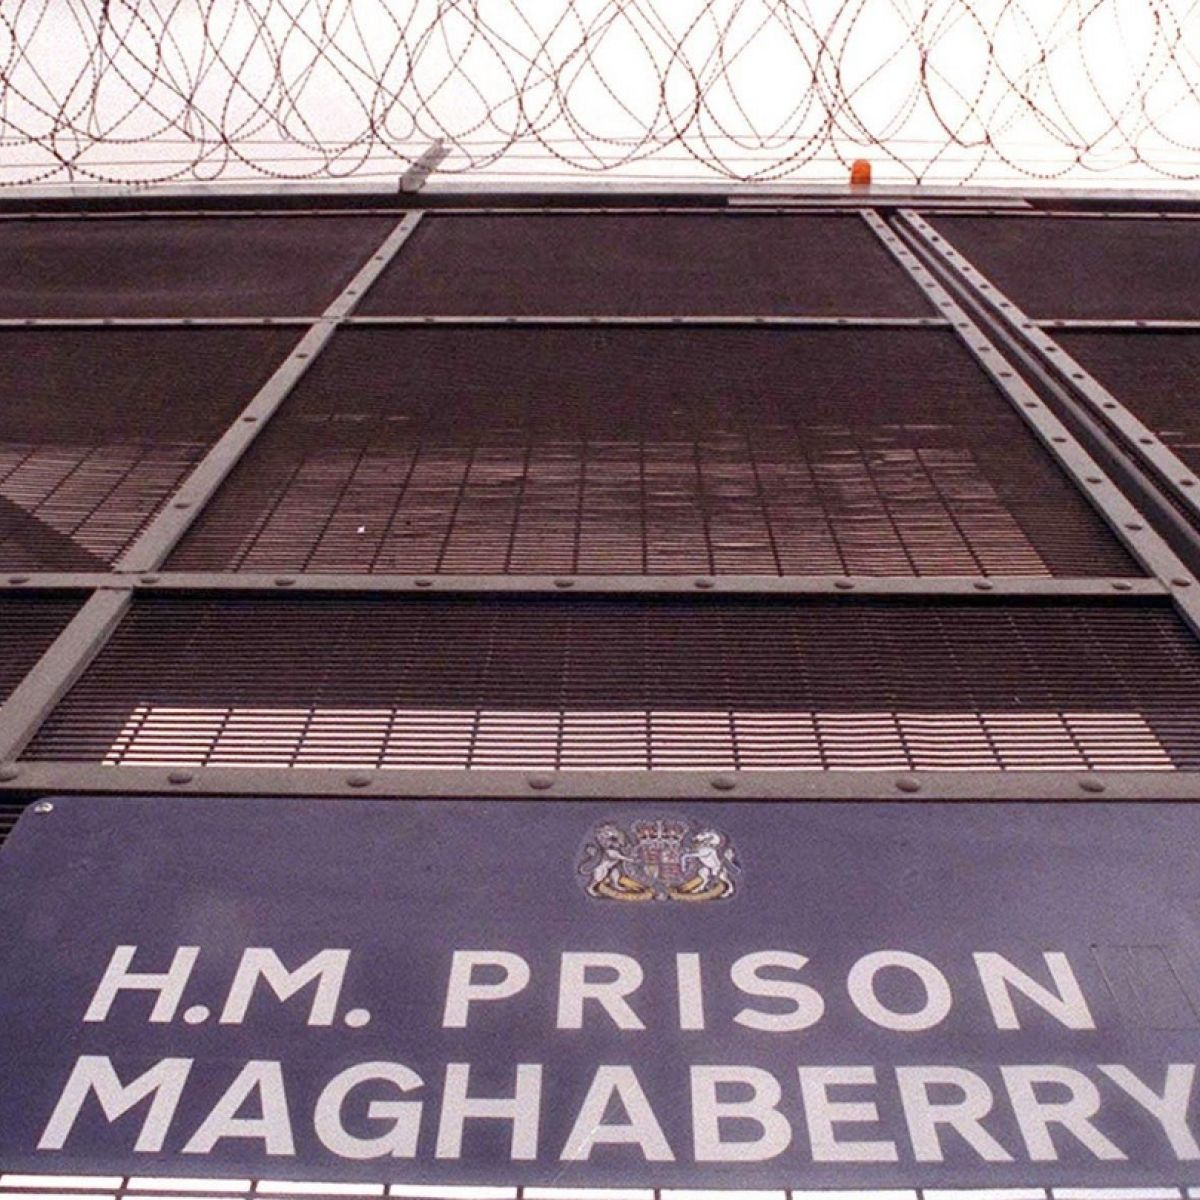 Prisoners in North held in long-term solitary confinement